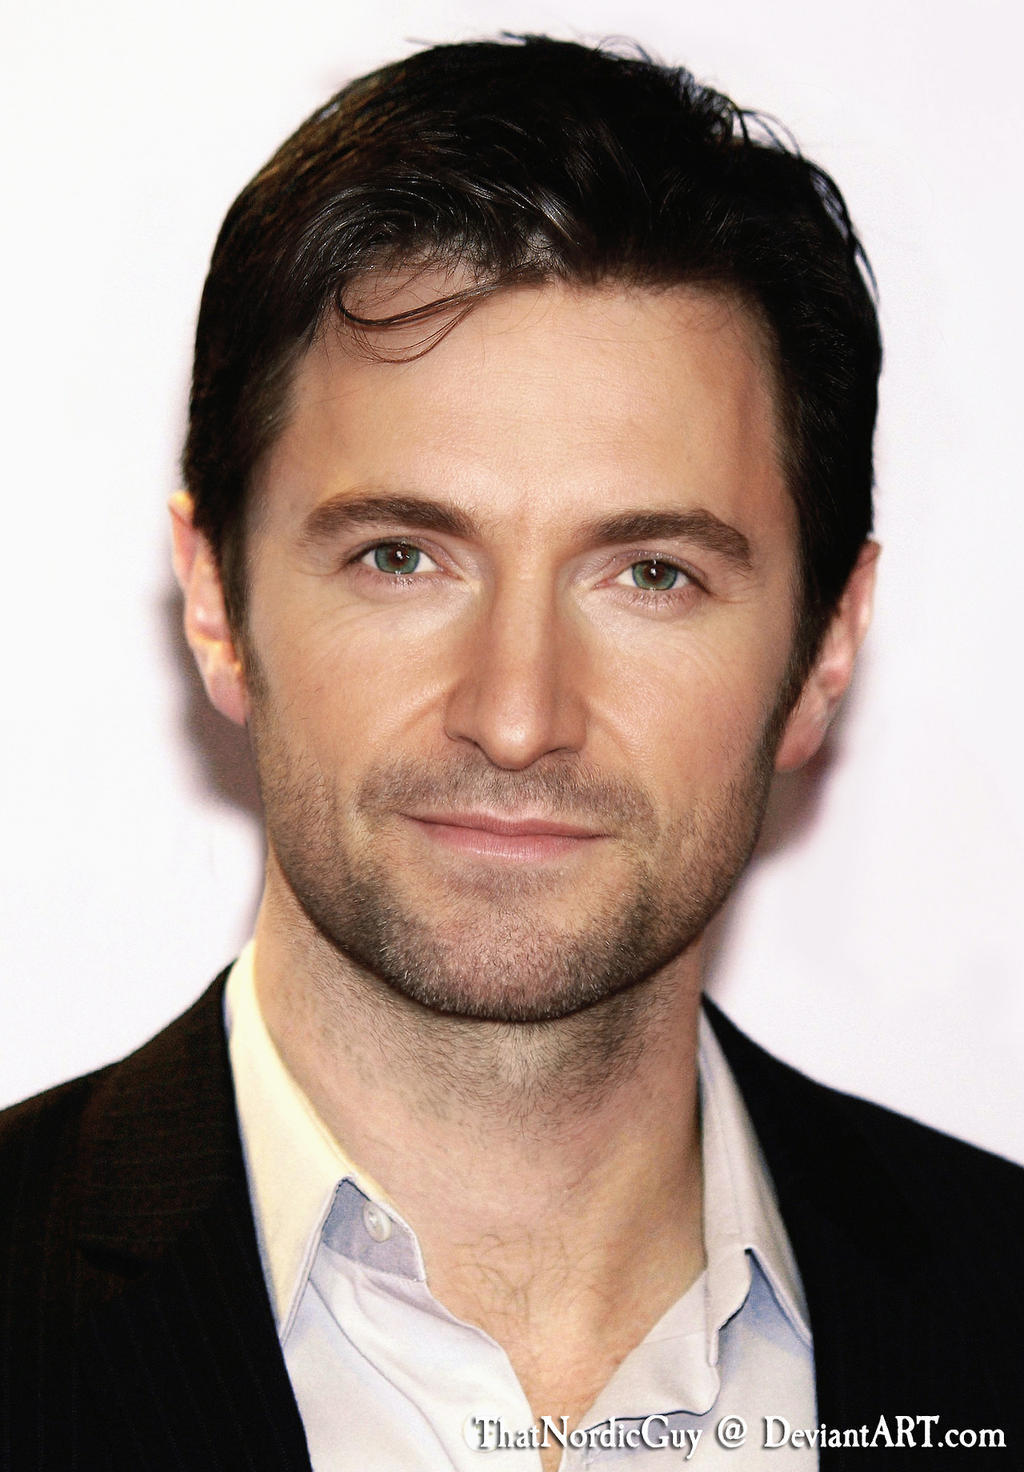 Richard Armitage Hugh Jackman By Thatnordicguy On Deviantart